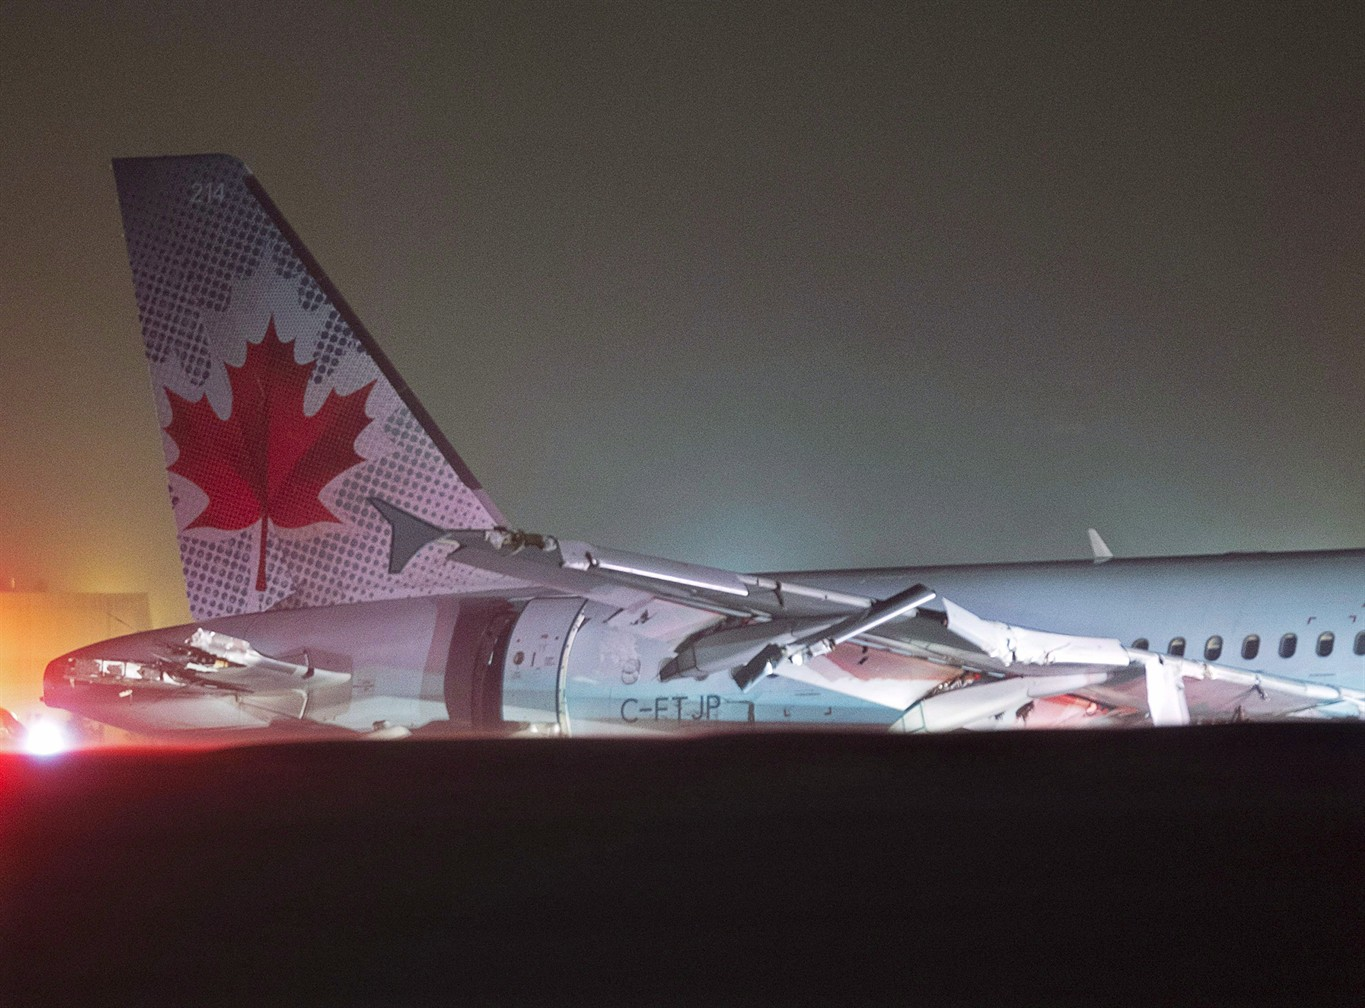 Ns jet crash lawsuit transport canada included in class action ns jet crash lawsuit transport canada included in class action certification 1betcityfo Image collections